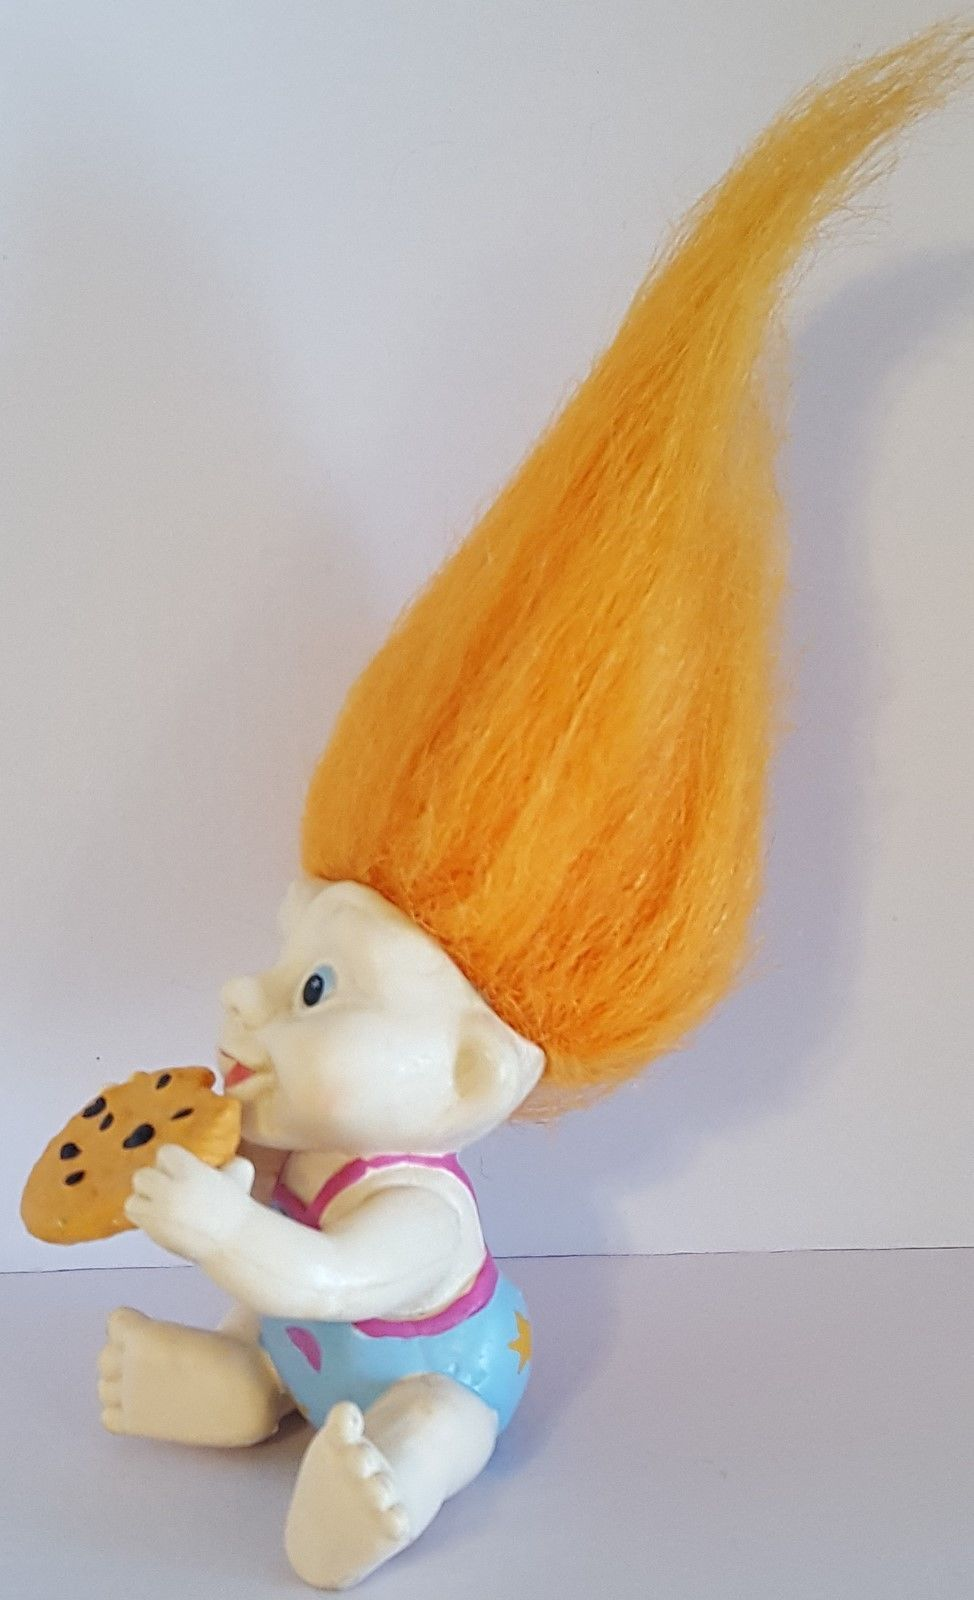 MAGIC TROLLS - APPLAUSE INC 1991 – Vintage Baby Troll with Cookie – 2 inches